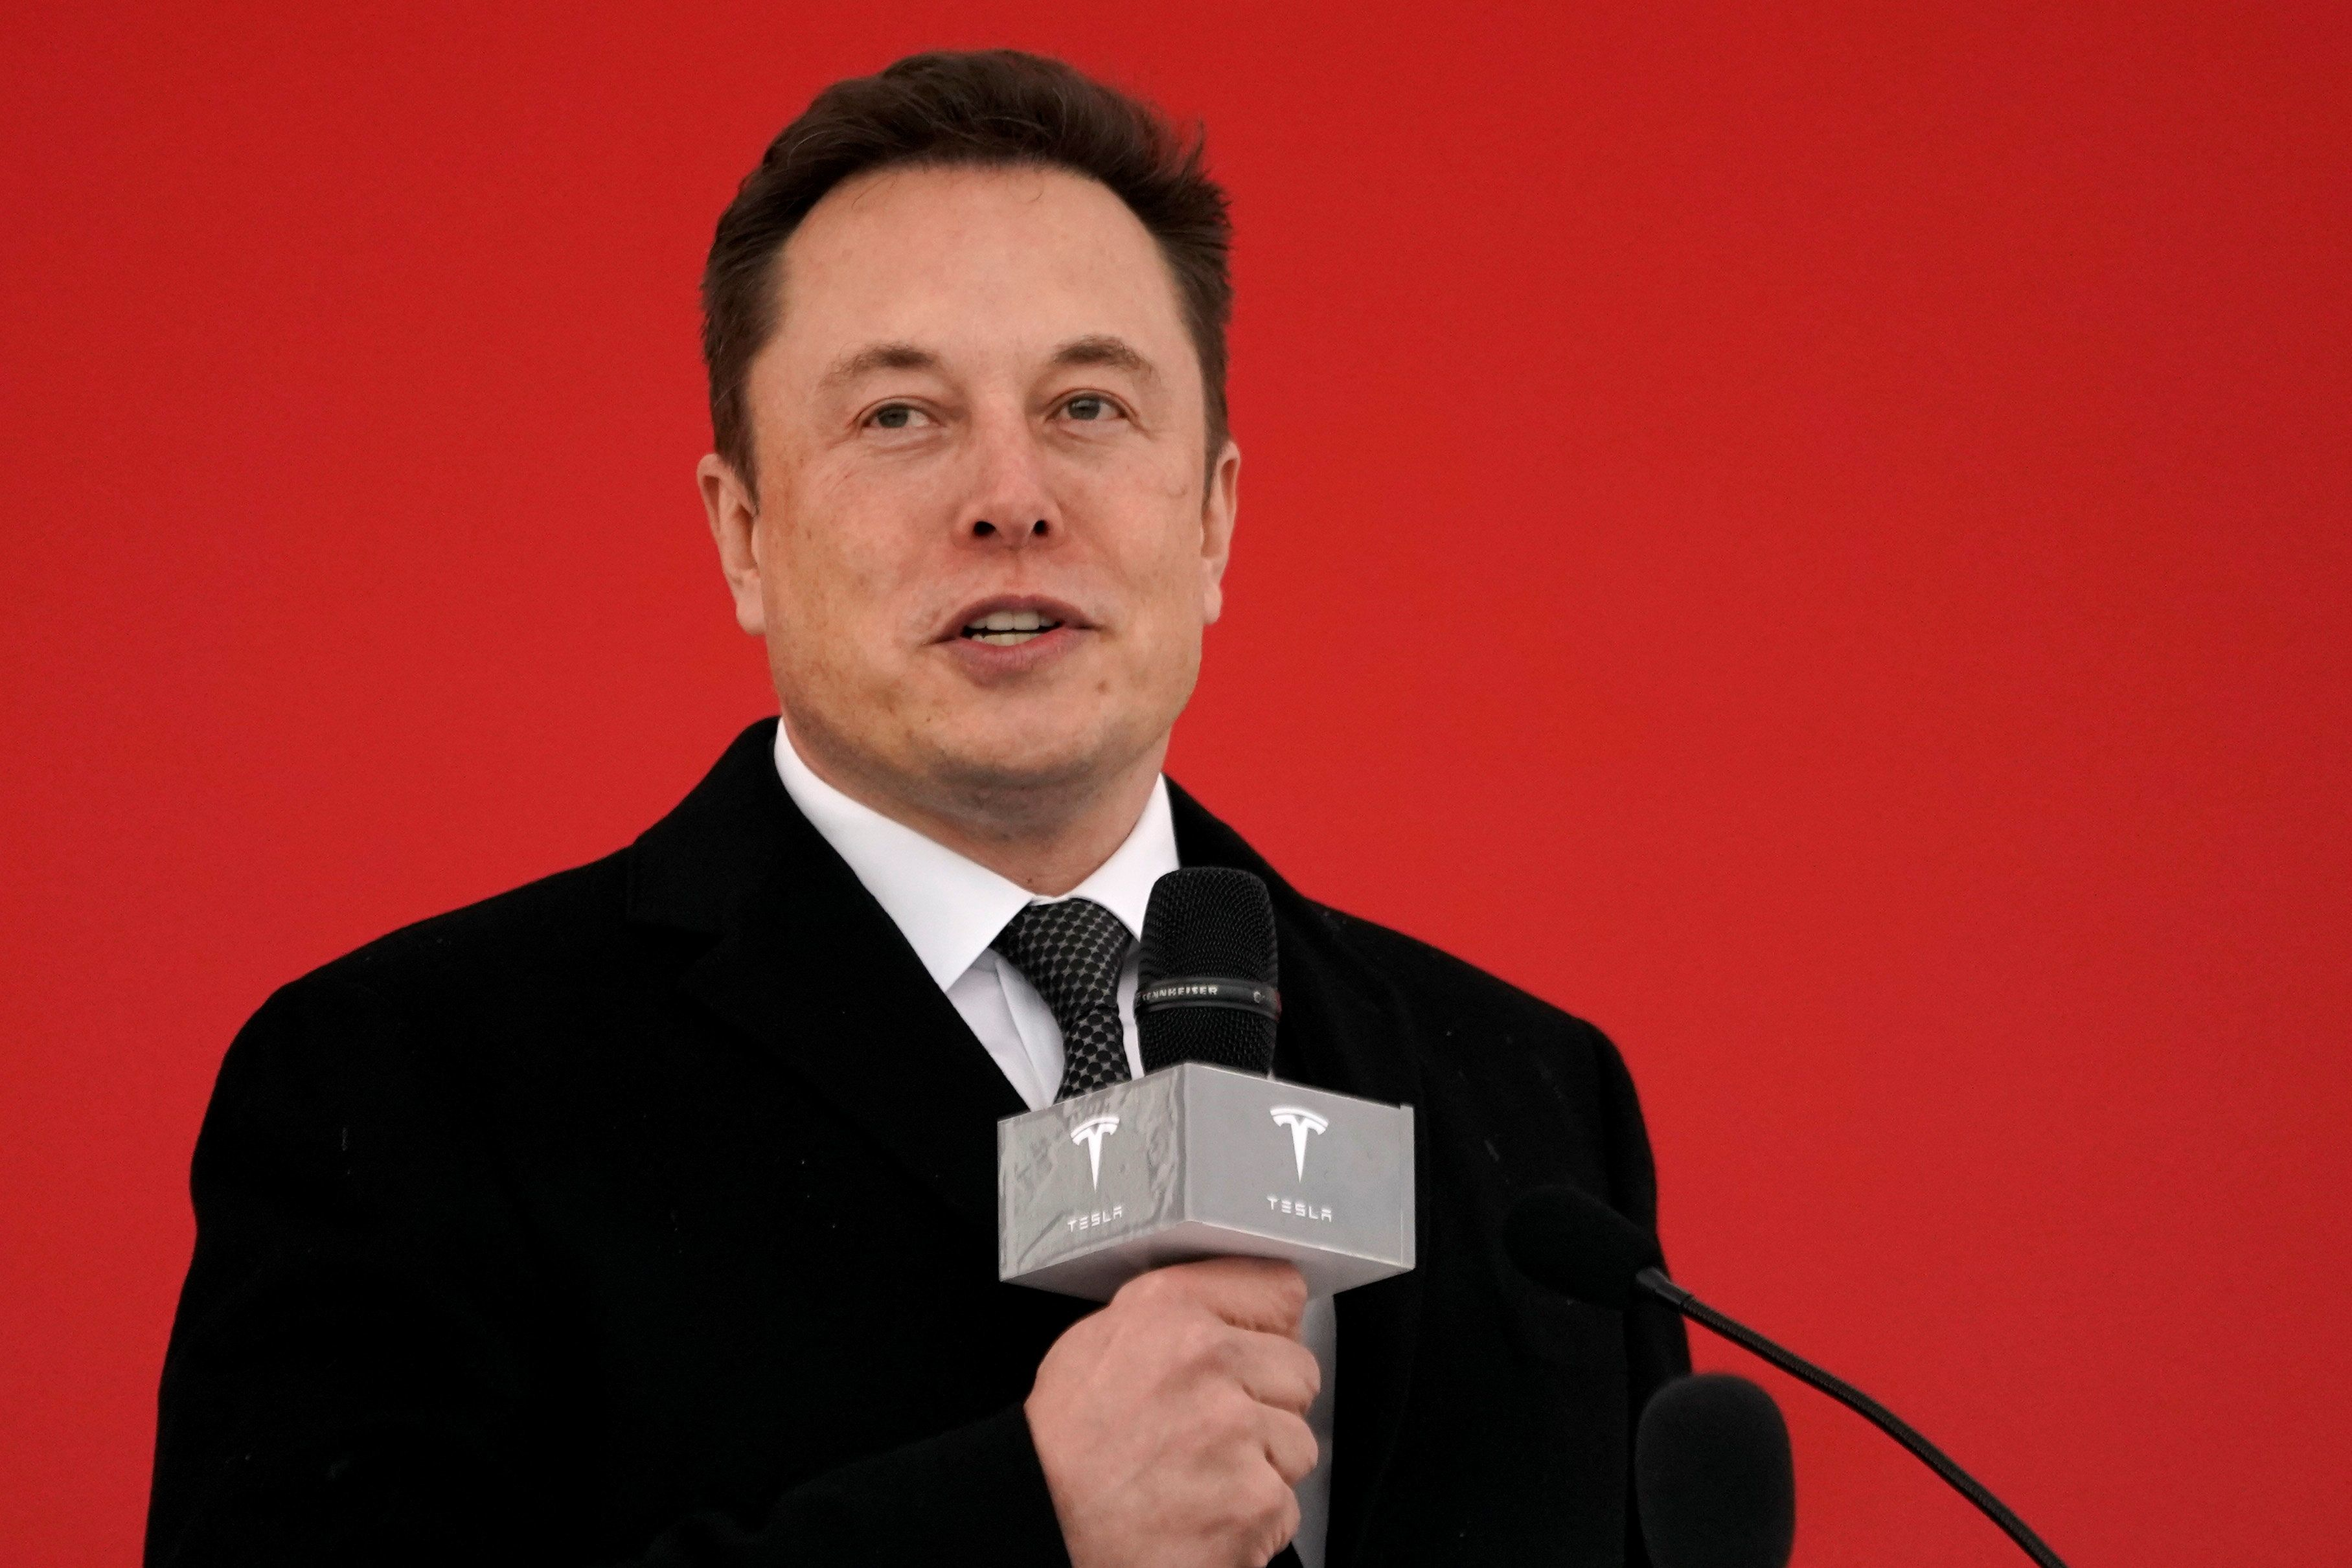 Tesla CEO Elon Musk attends the Tesla Shanghai Gigafactory groundbreaking ceremony in Shanghai, China January 7, 2019. REUTERS/Aly Song